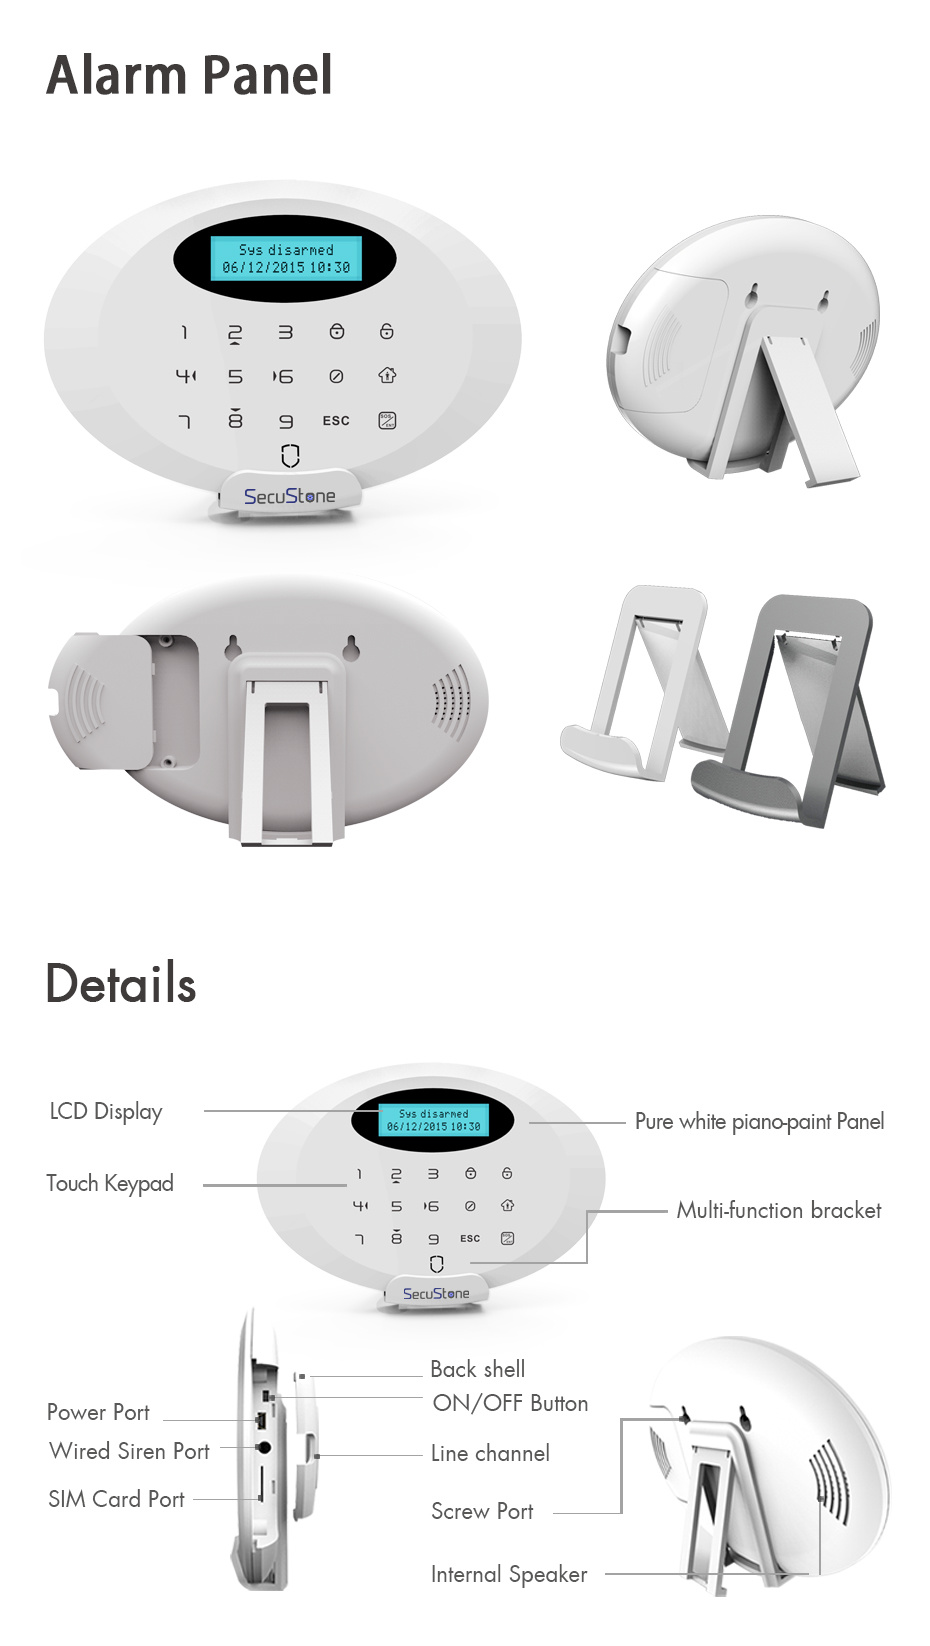 Secustone Home Burglar GSM (Global System for Mobile Communications) Alarm System with Alarm Detectors